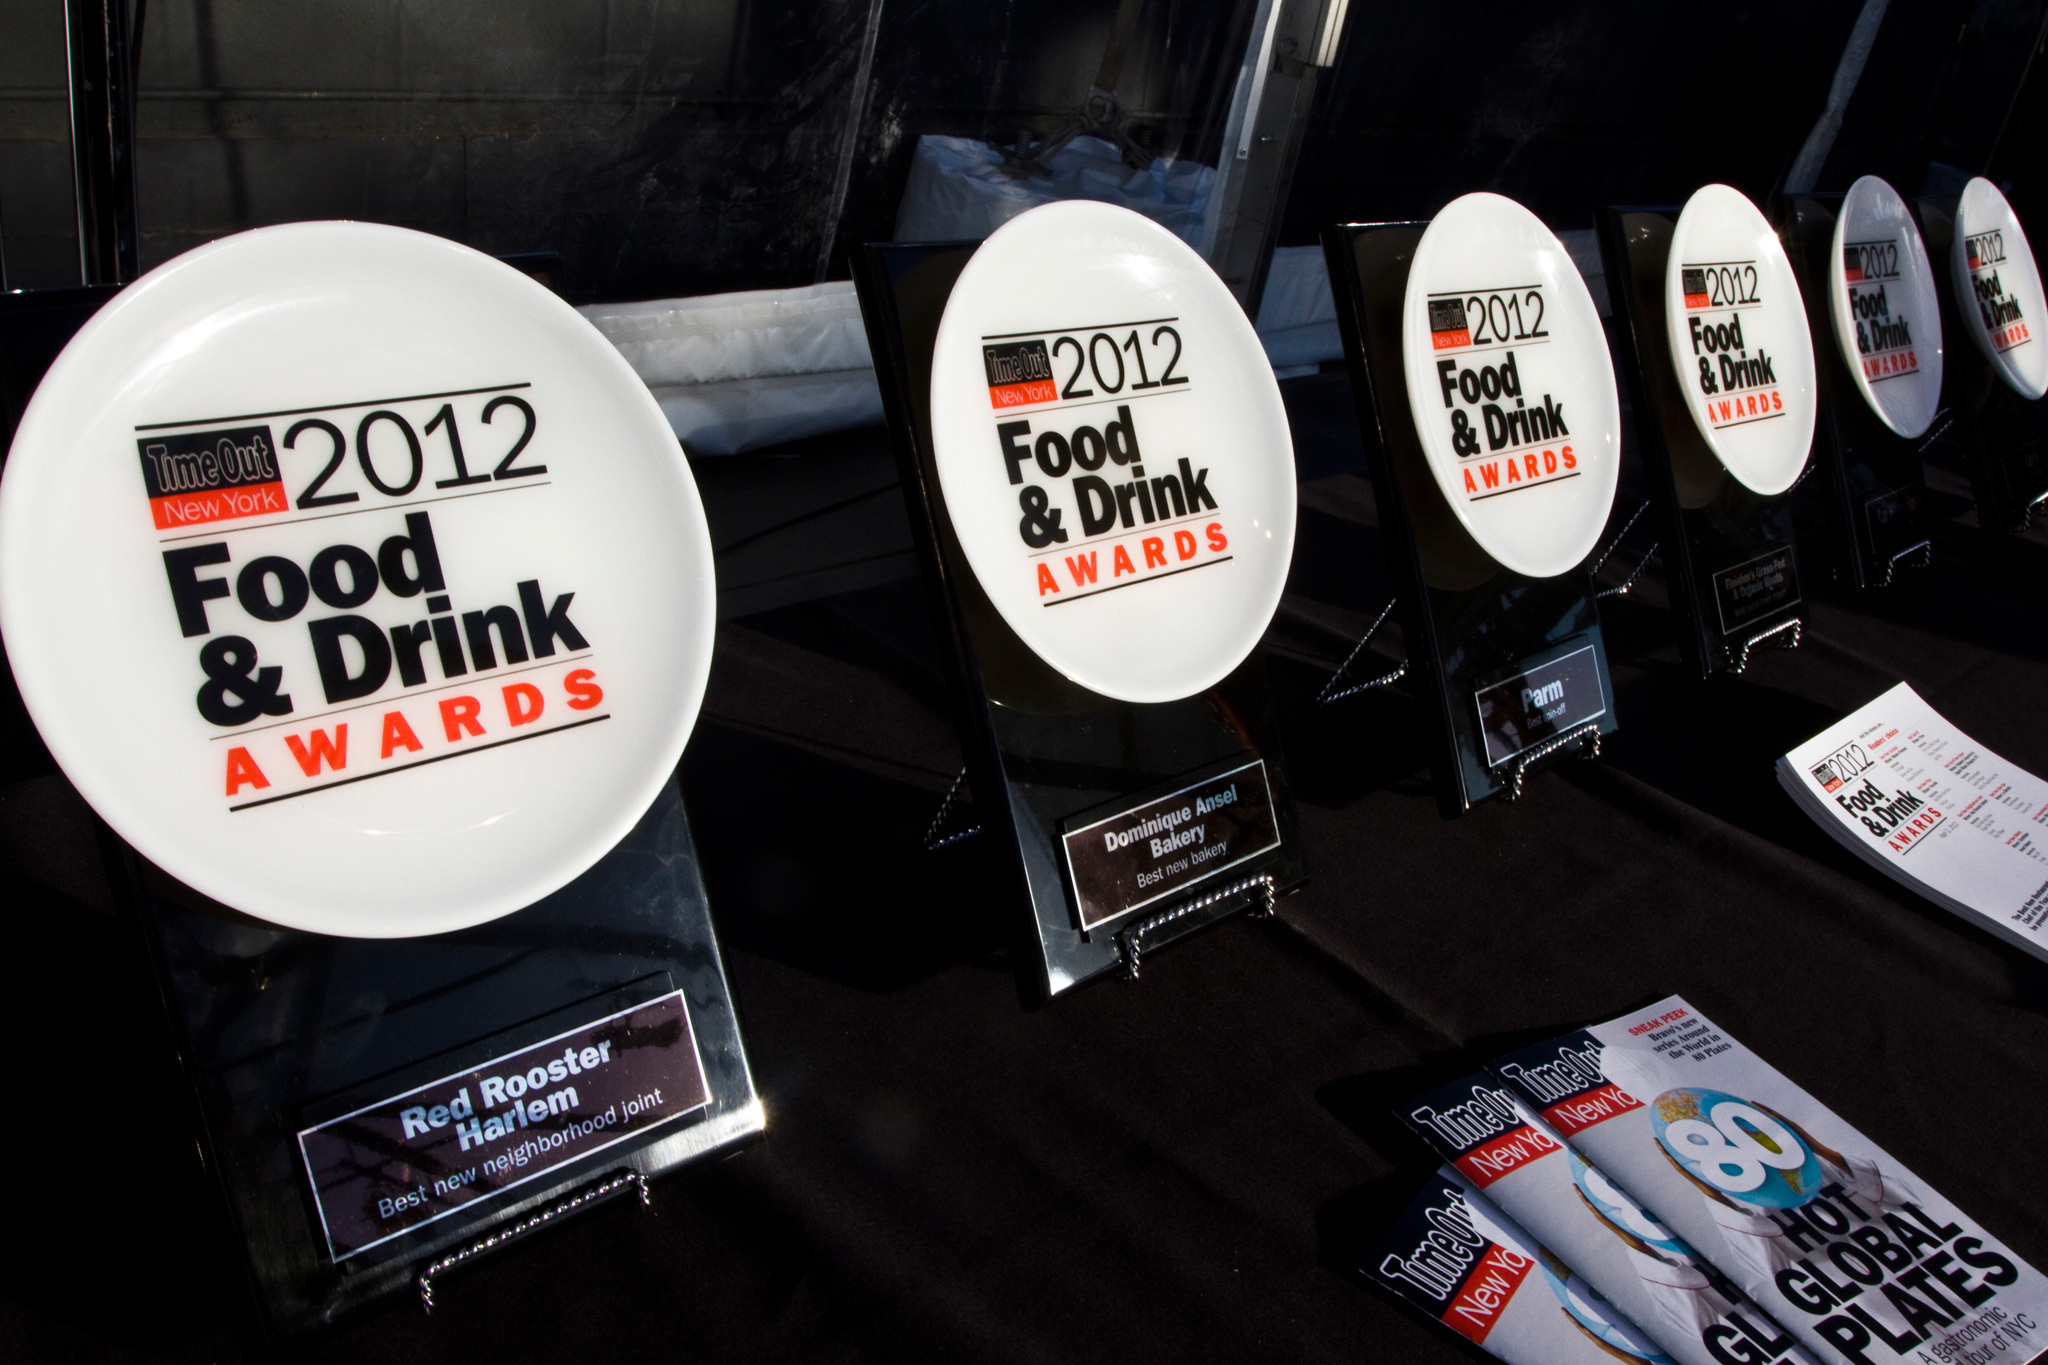 Photos: Food & Drink Awards Ceremony 2012